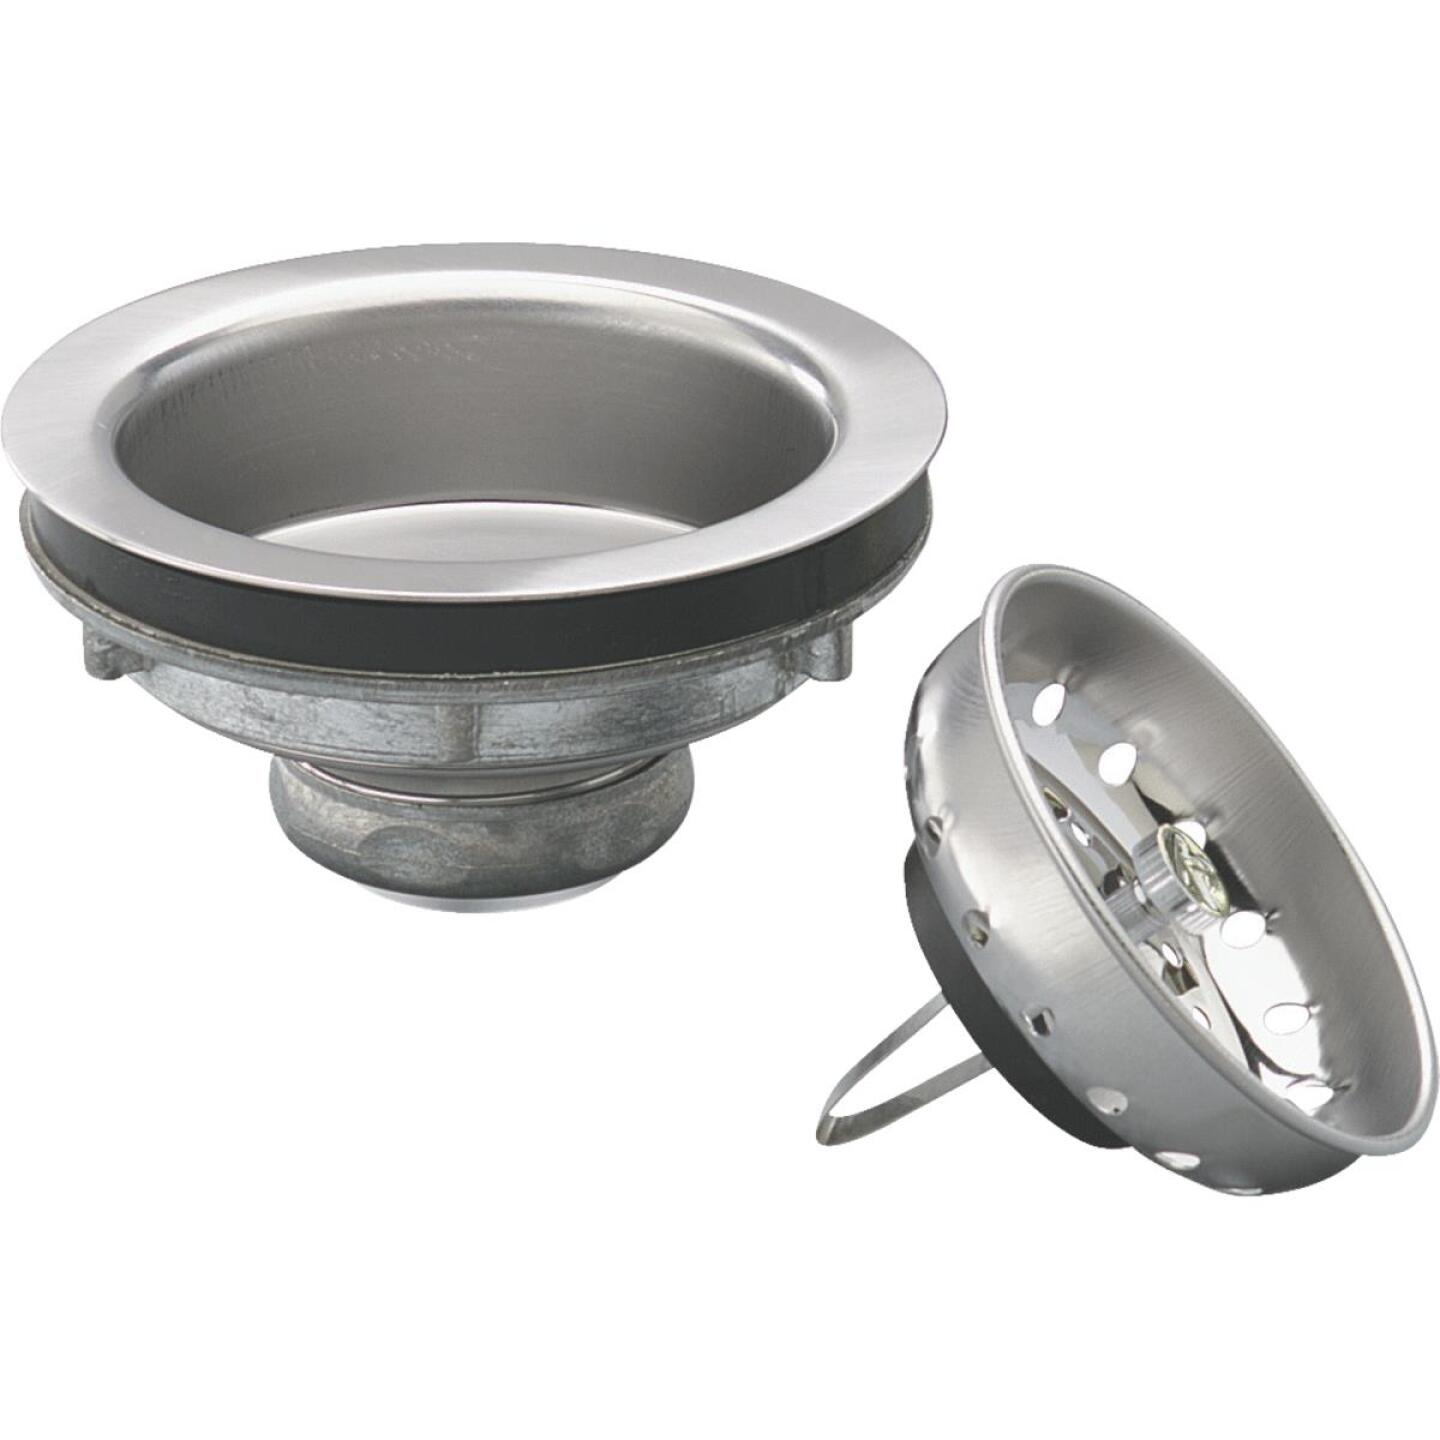 Keeney Champion 3-1/2 In. Stainless Steel Basket Strainer Assembly Image 1